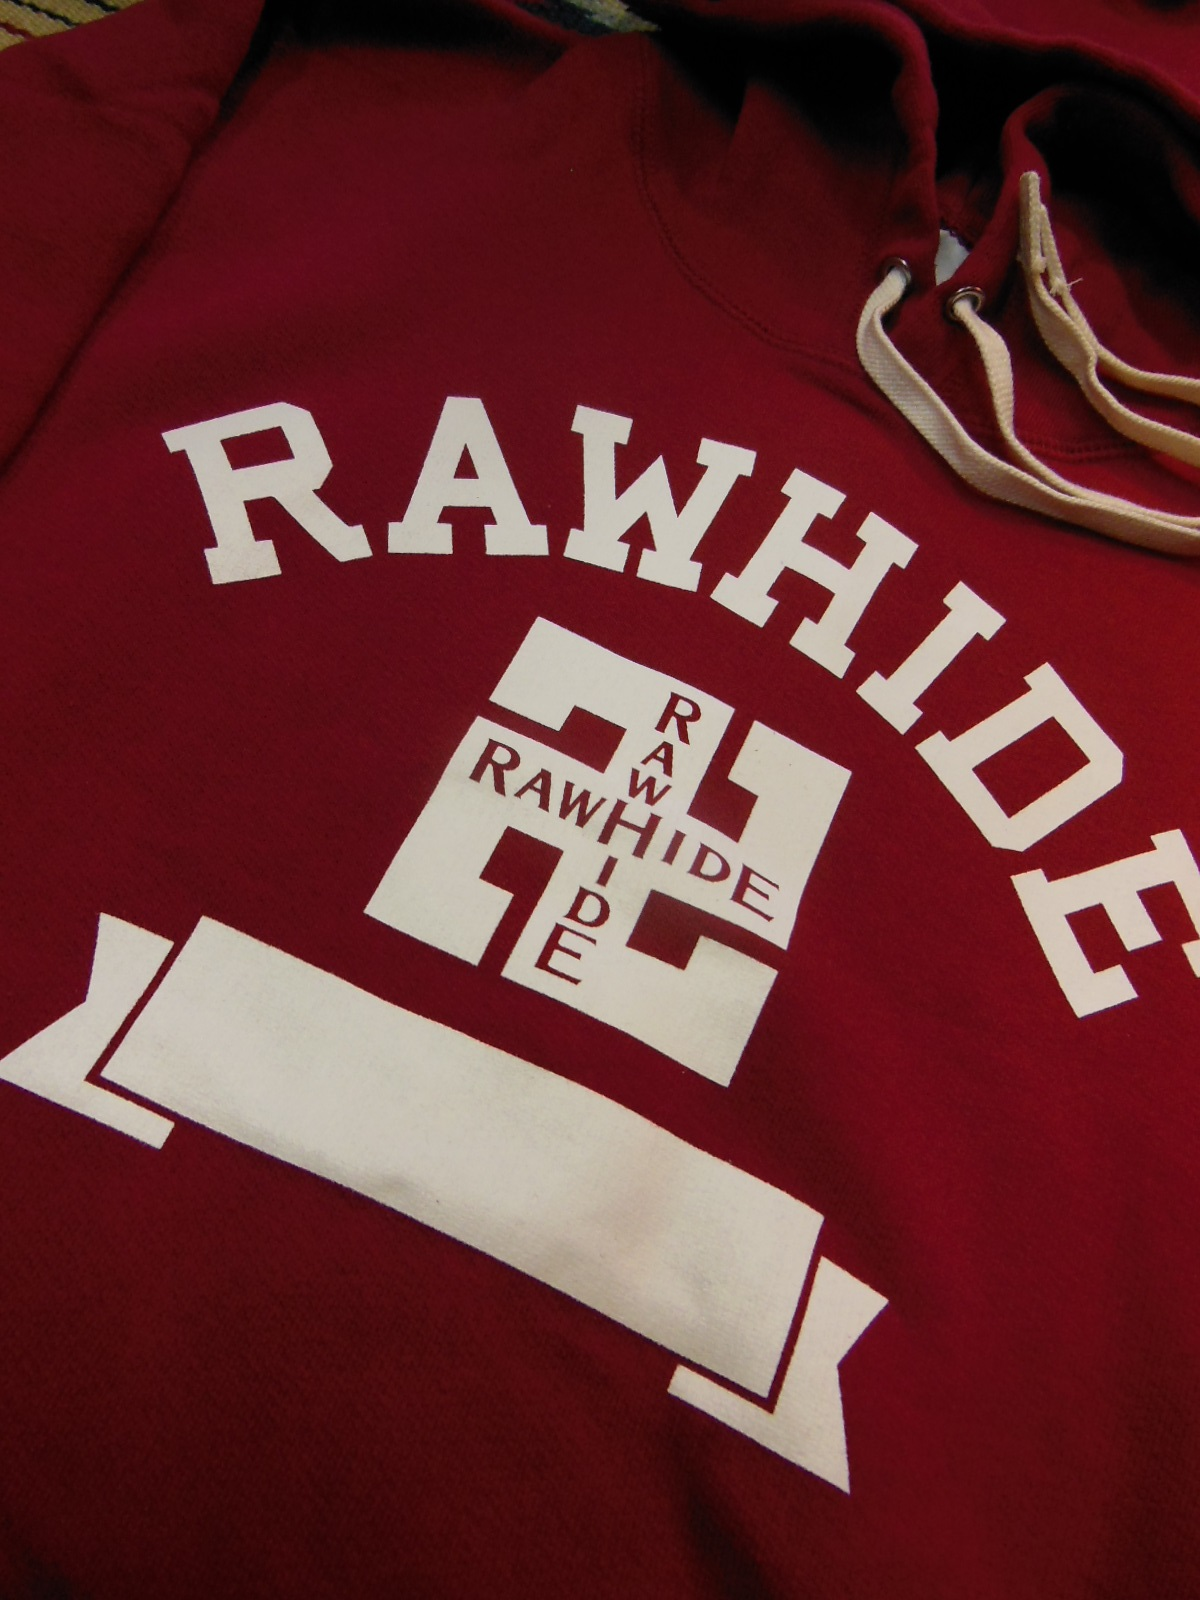 NEW RAWHIDE Whirling logs Tシャツ、パーカー入荷_c0187684_18413282.jpg